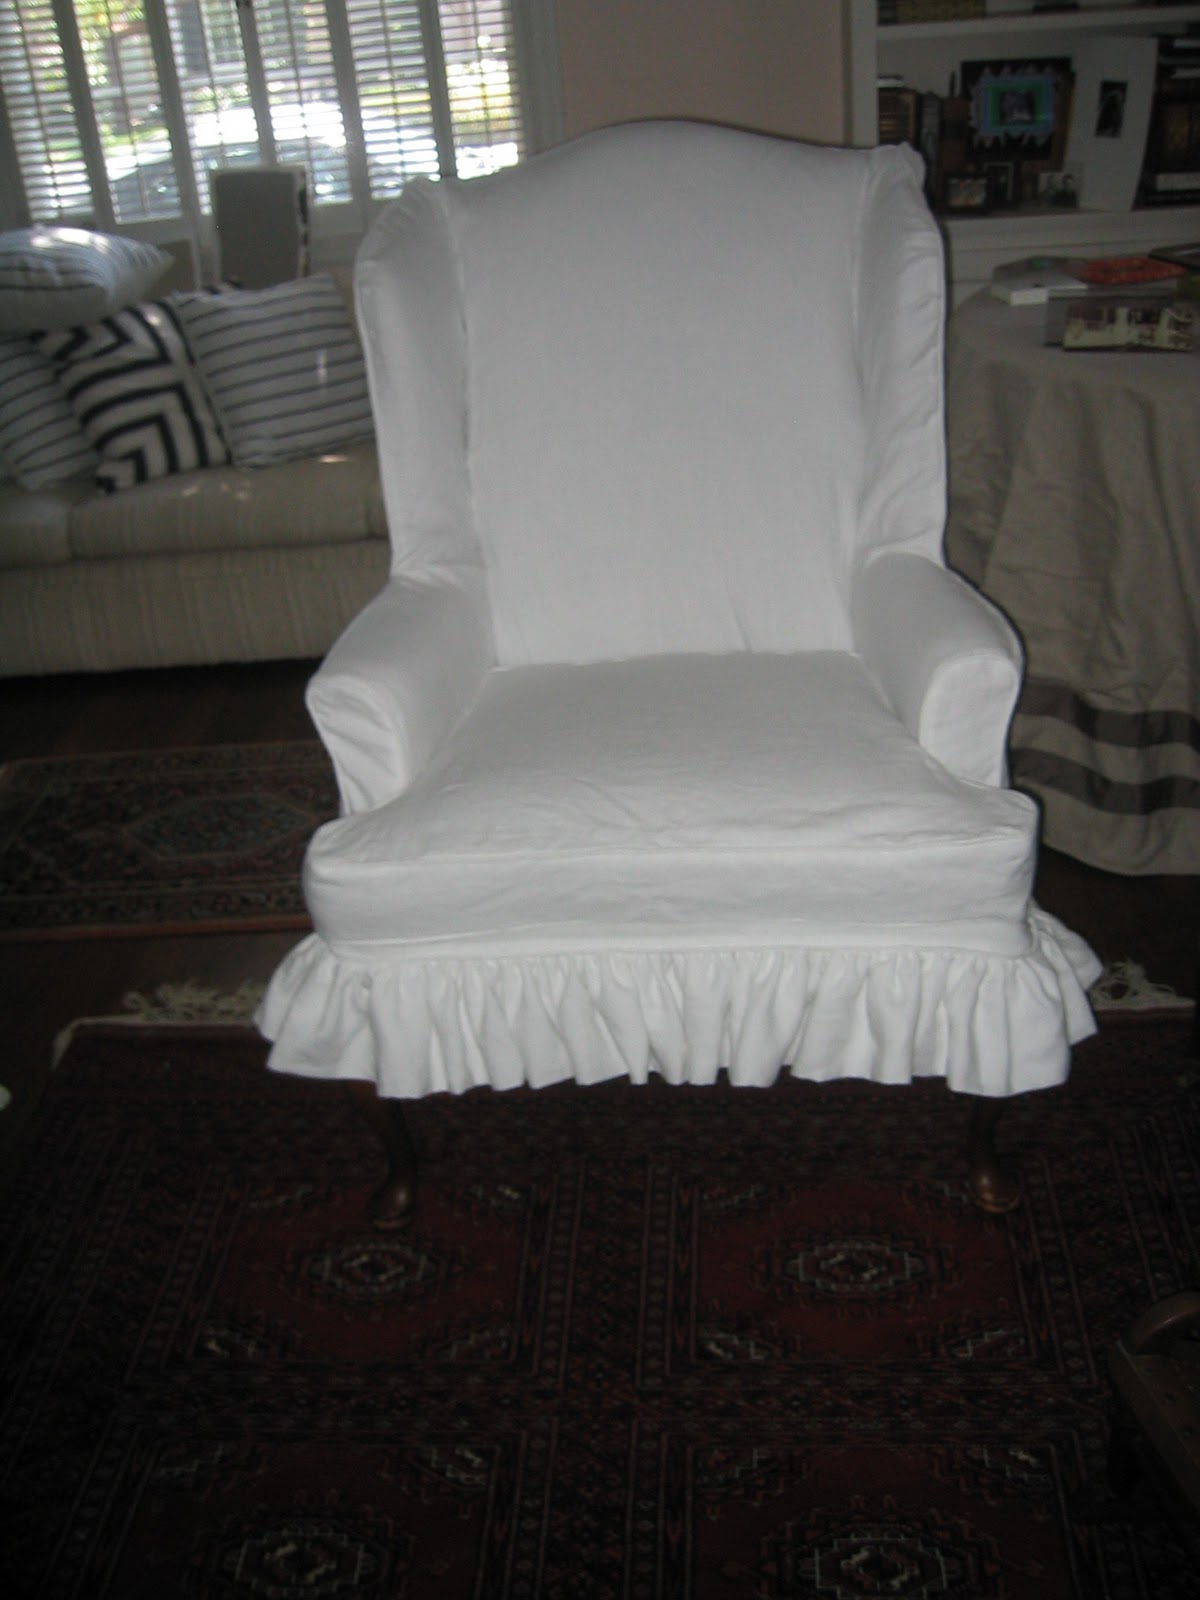 Chair Covers White Linen Toddler Saucer Canada A Little Of This That And The Other Wing